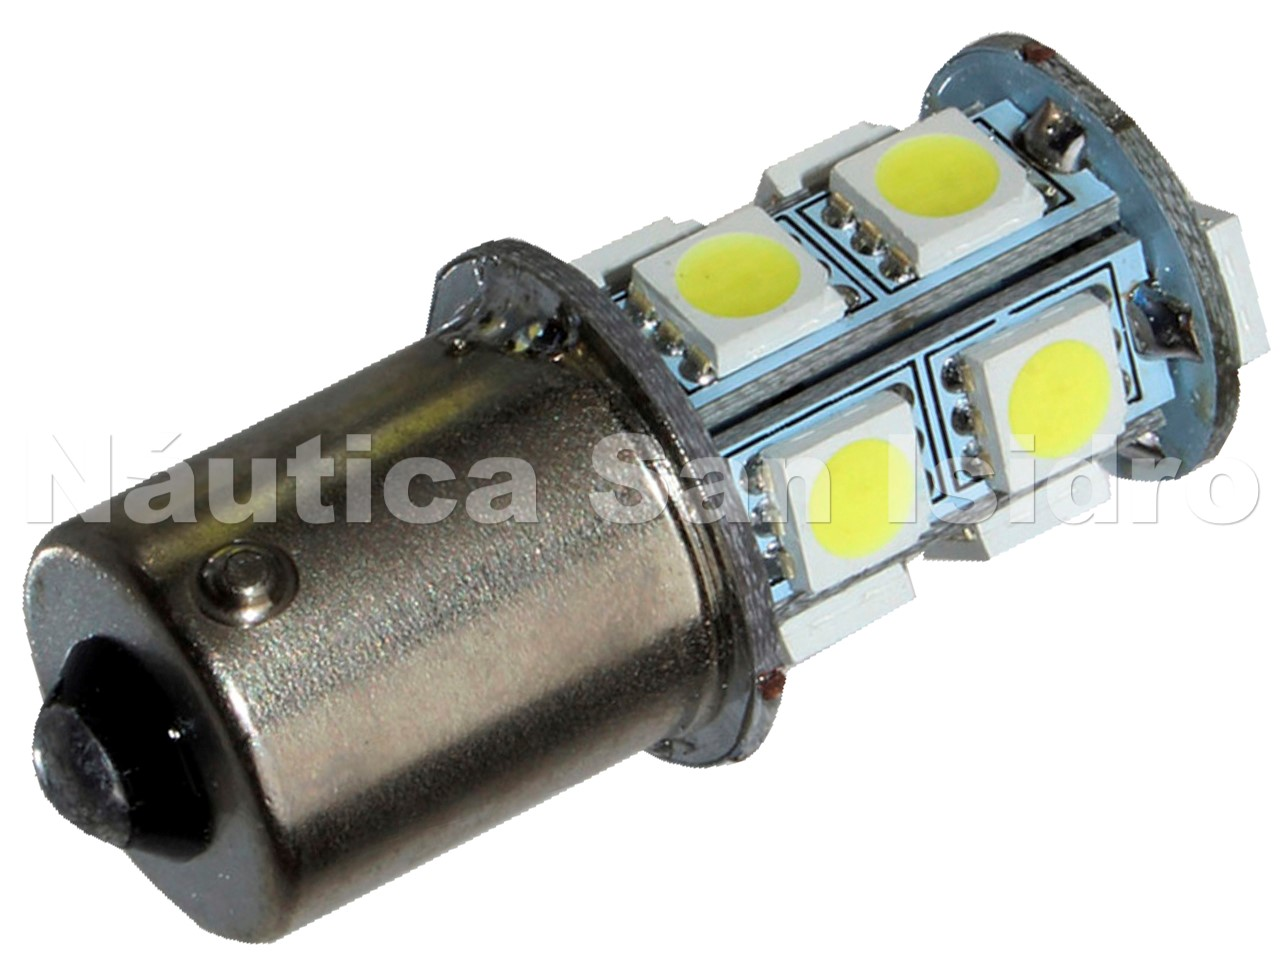 luz-led-360-1-polo-2.jpg